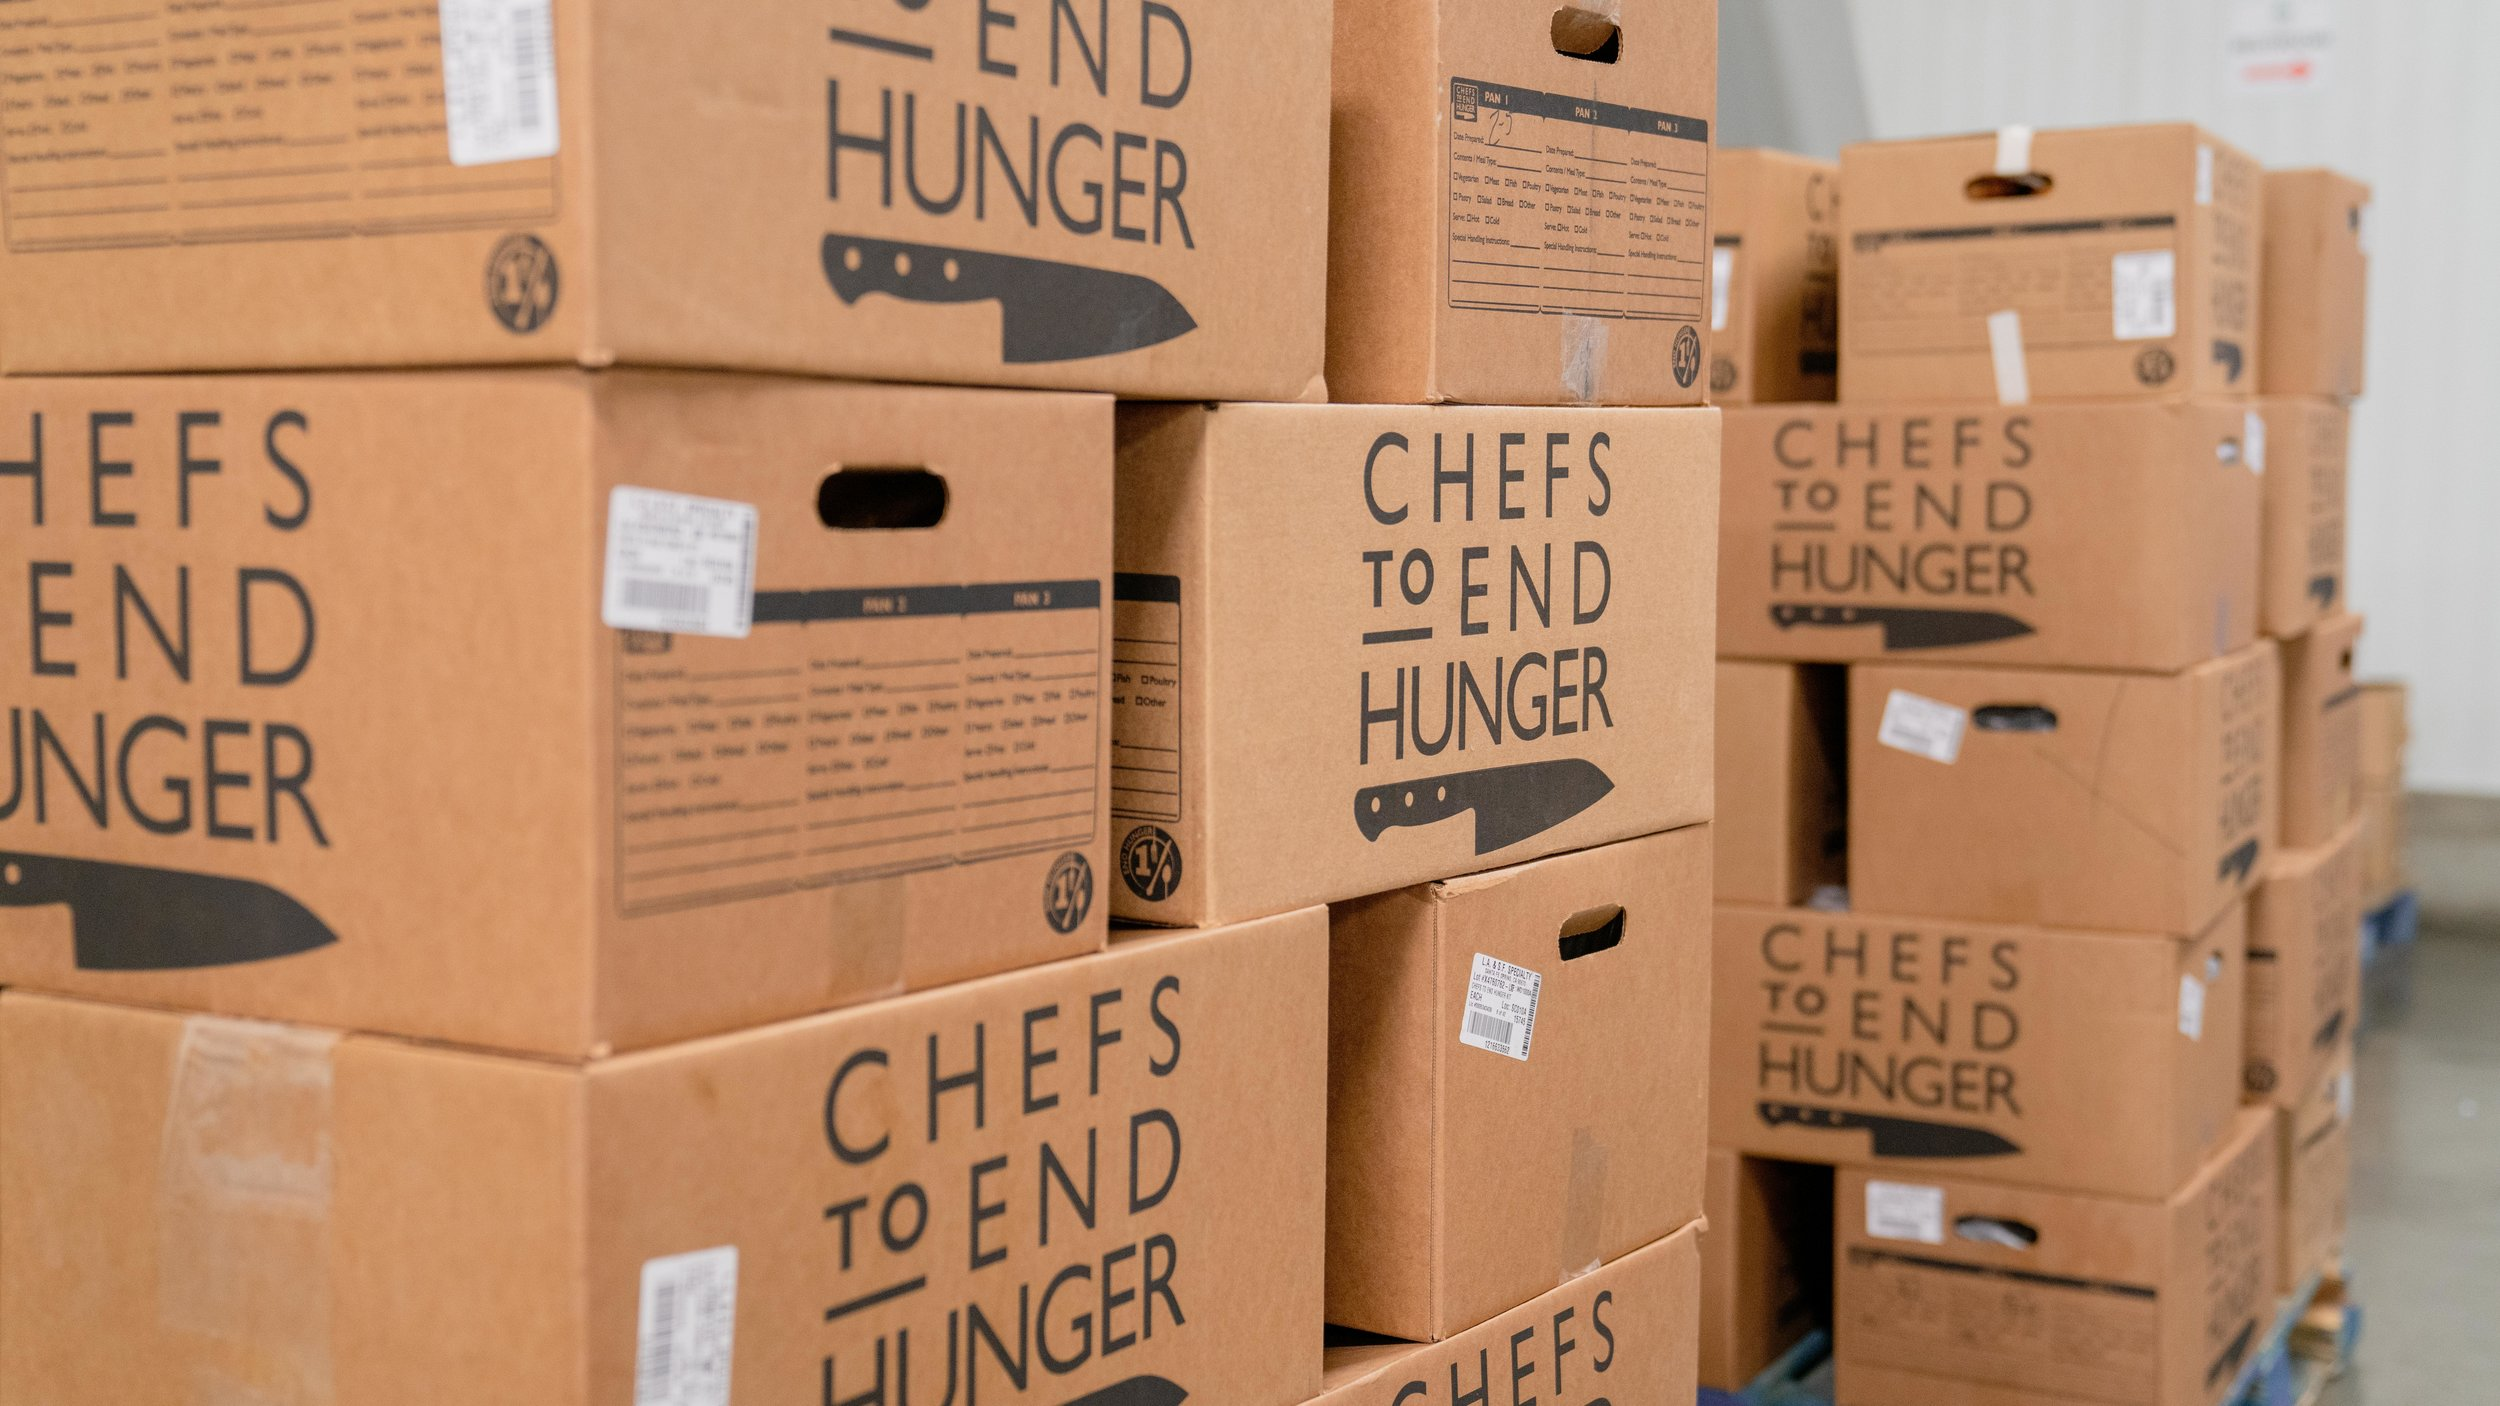 Just a taste of the thousands of Chefs to End Hunger boxes you'll find in one of their warehouses.